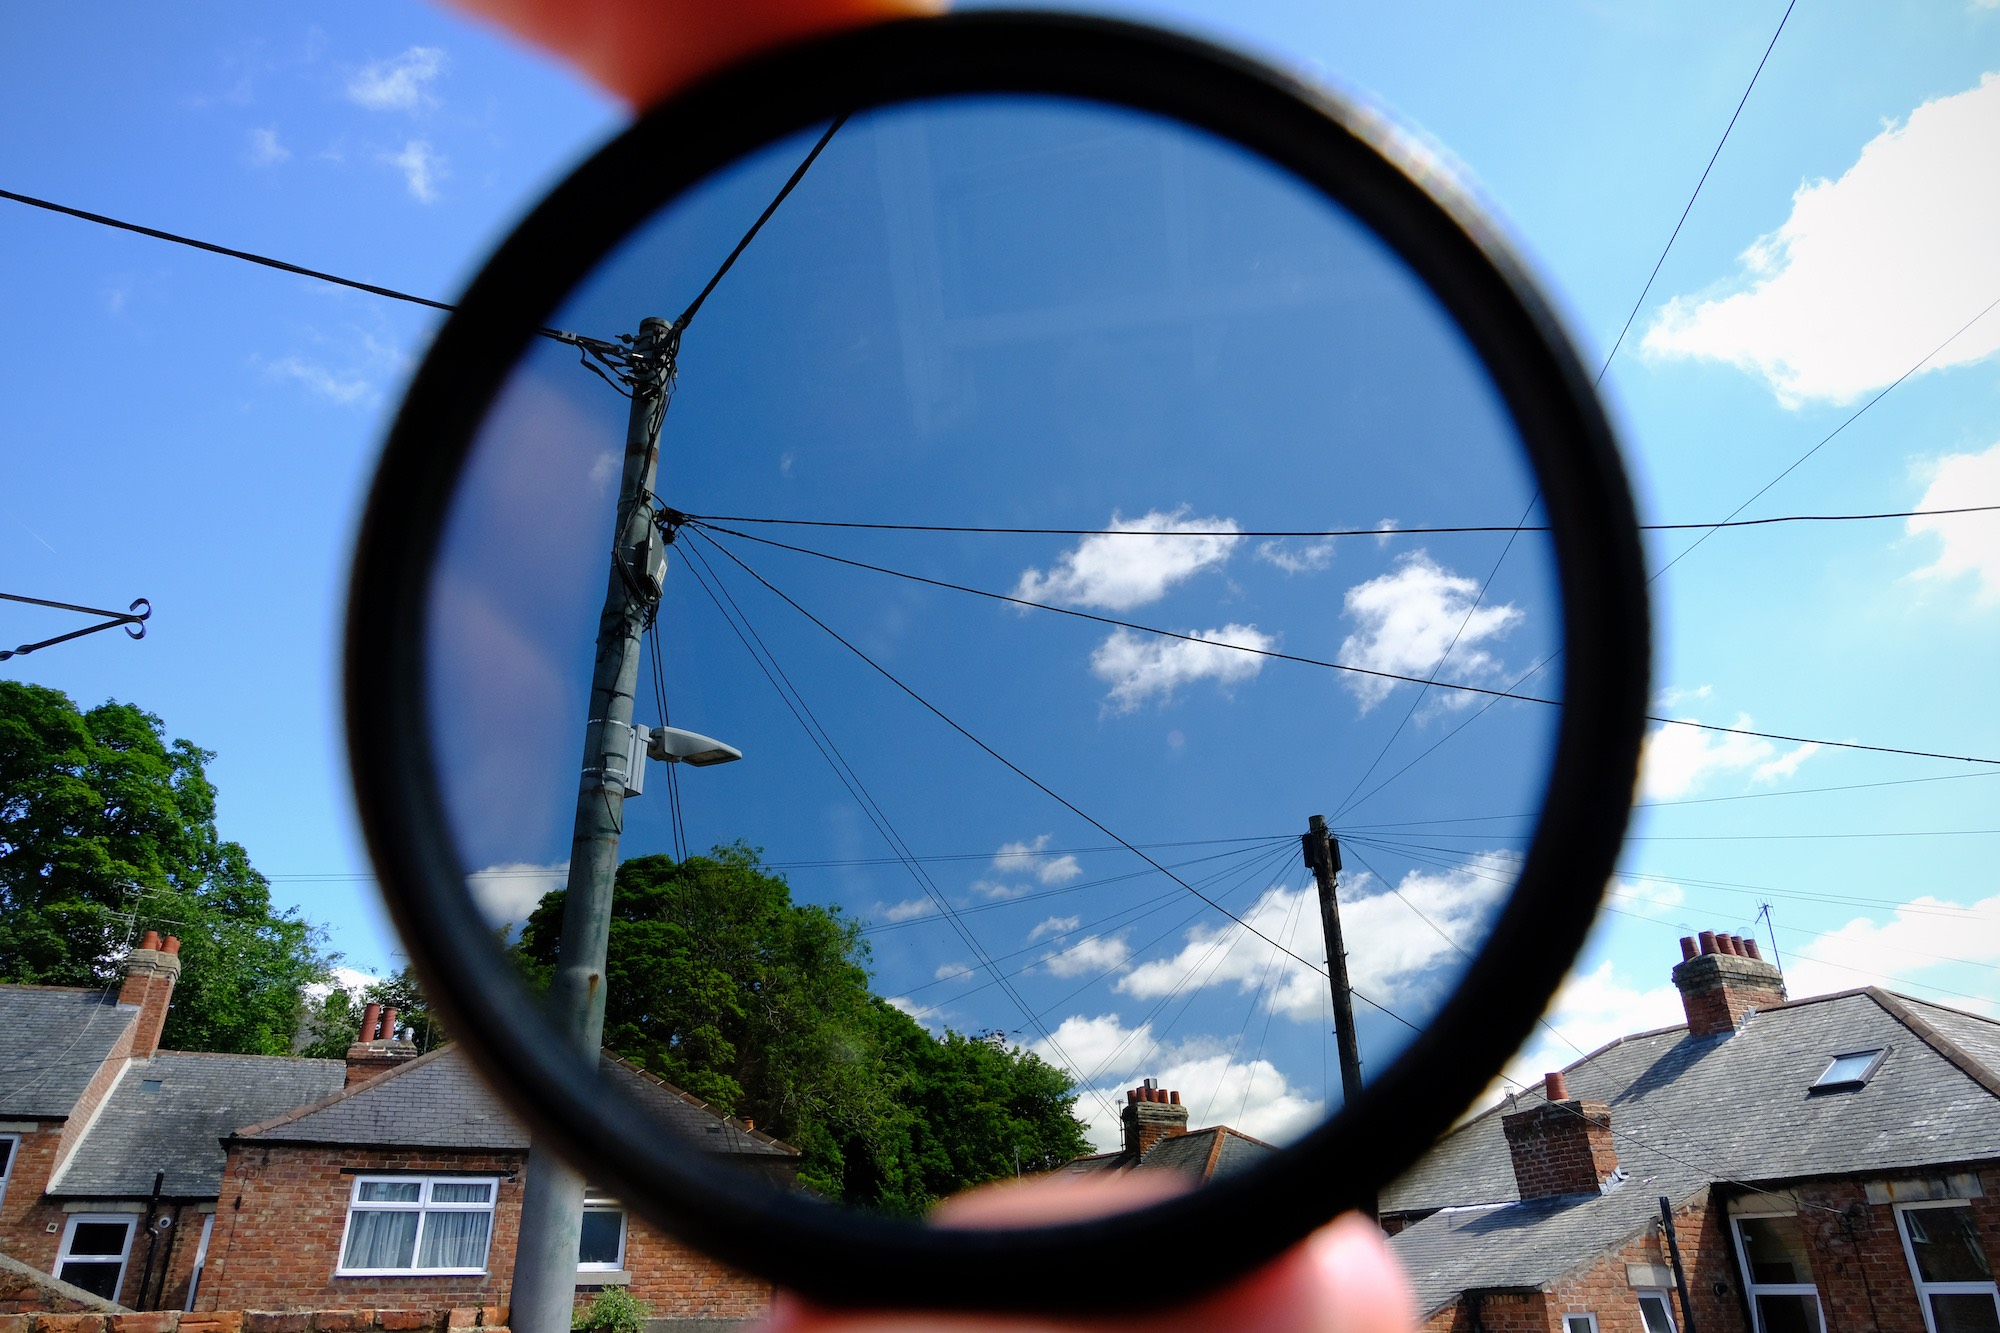 Looking at clouds through a polarizer filter